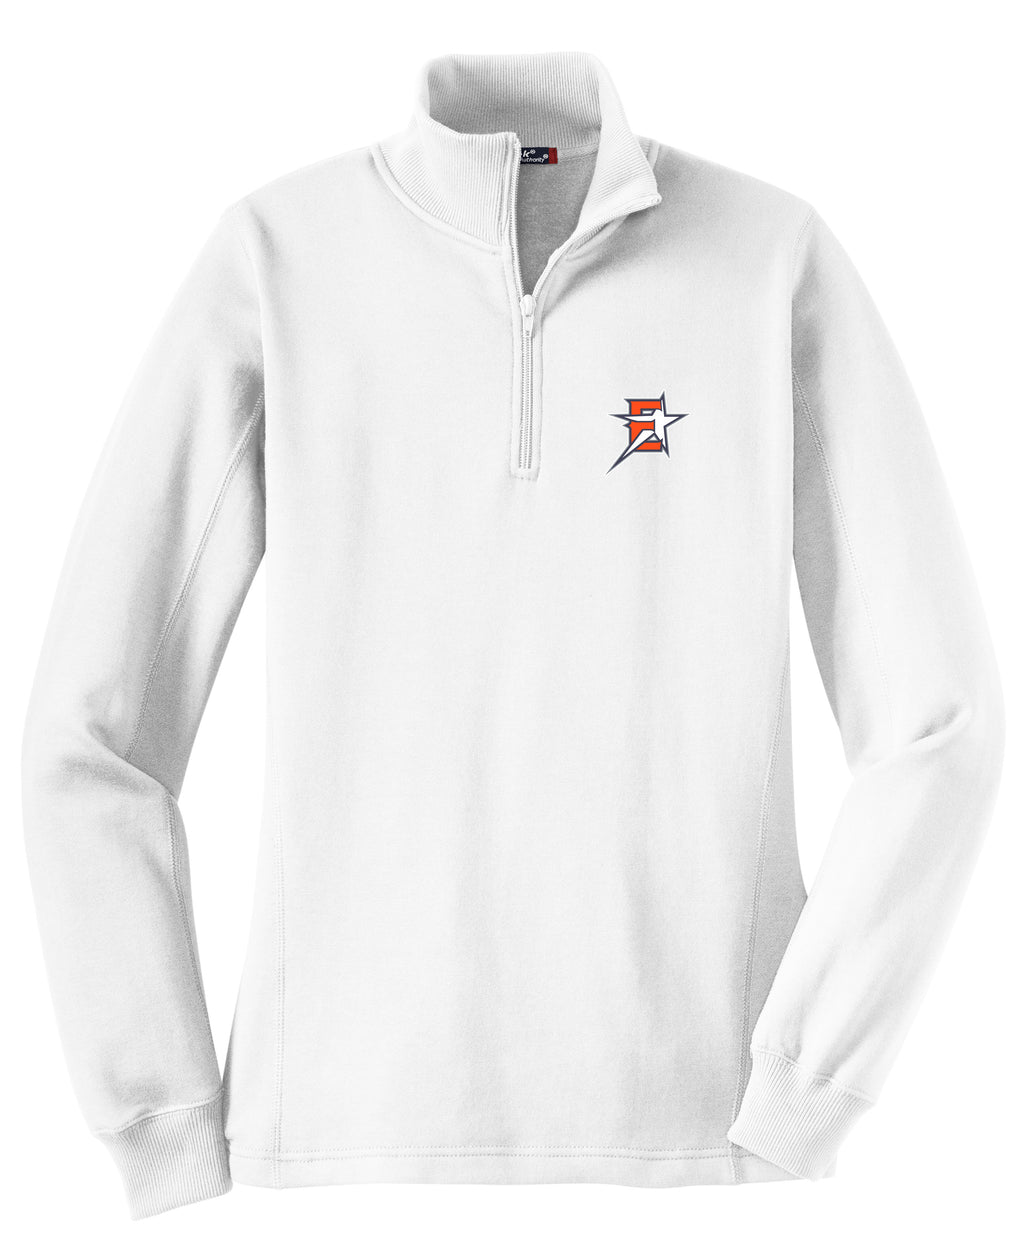 2019 Eastvale Girl's Softball Women's 1/4 Zip Fleece